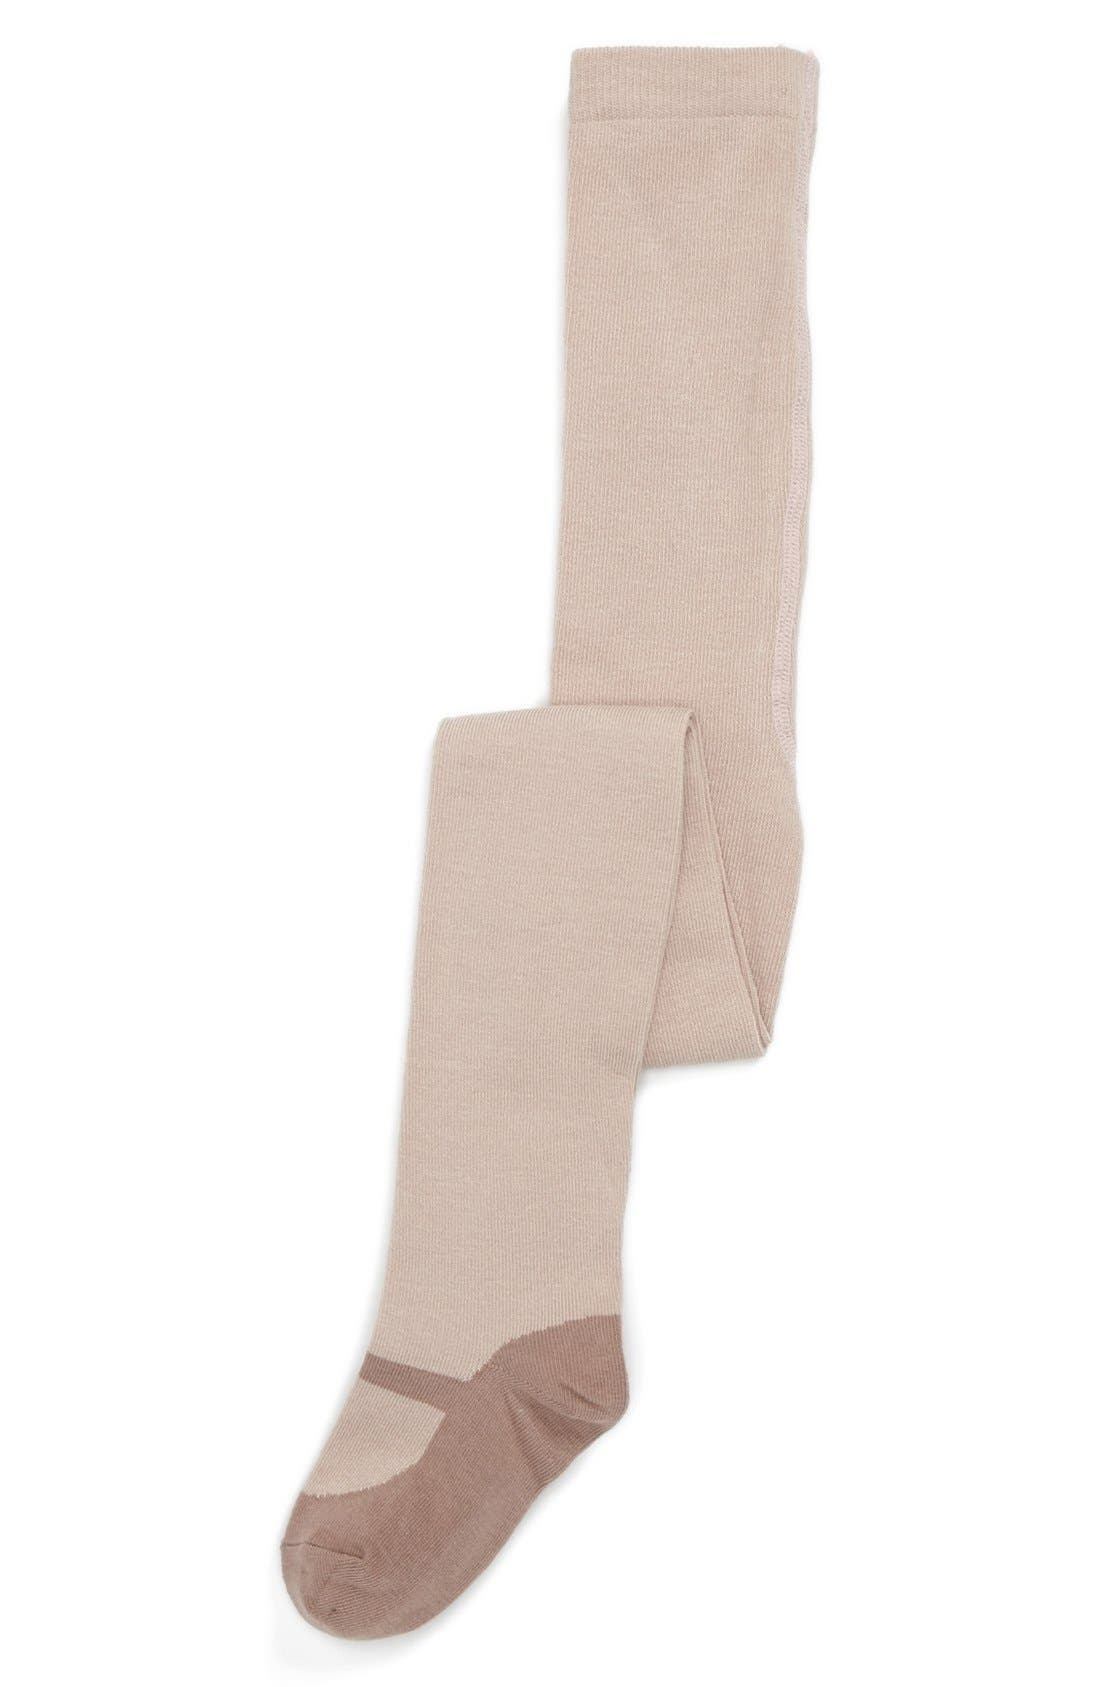 Alternate Image 1 Selected - Stella McCartney Kids 'Bella' Tights (Little Girls)